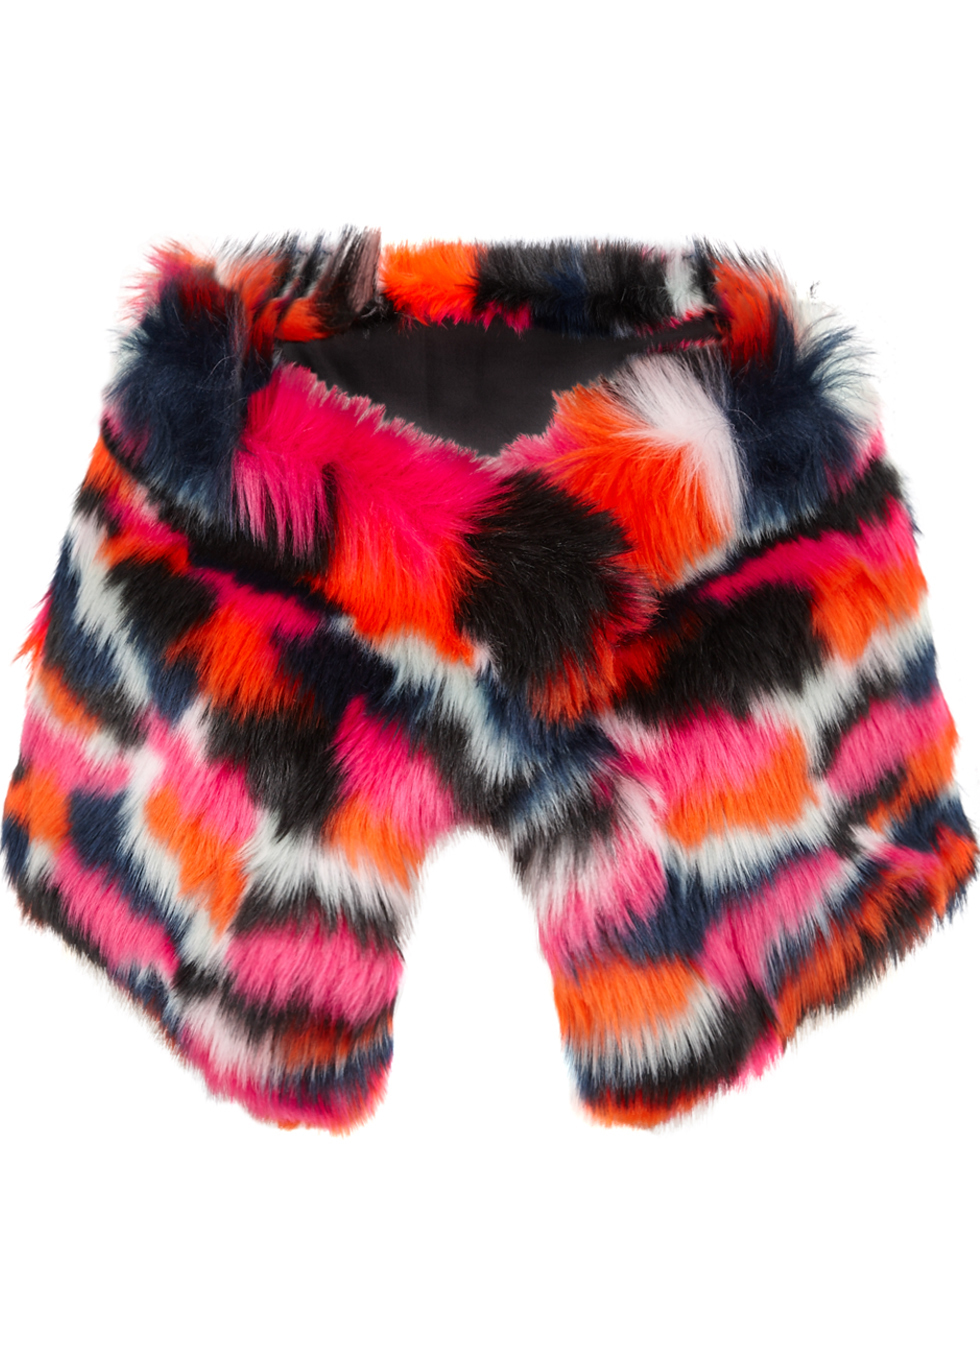 Faux Fur Scarf - predominant colour: hot pink; secondary colour: bright orange; occasions: casual, creative work; type of pattern: standard; size: large; material: faux fur; pattern: patterned/print; style: stole; multicoloured: multicoloured; season: a/w 2016; wardrobe: highlight; trends: opulent prints